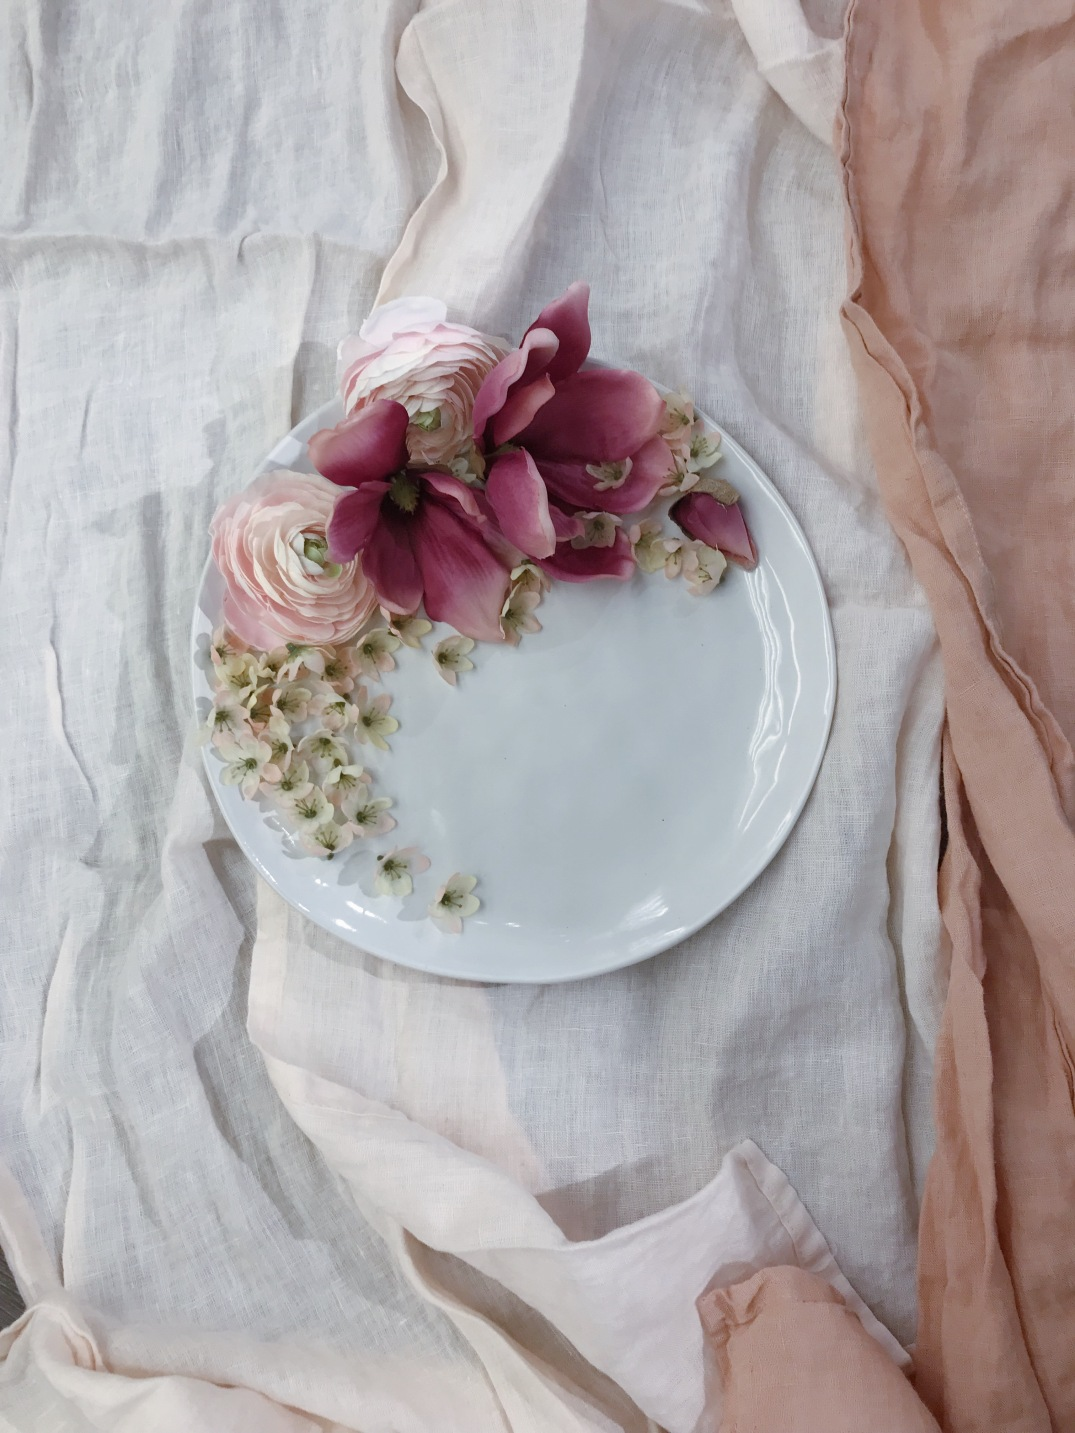 Playing around with faux magnolias and  white ceramics